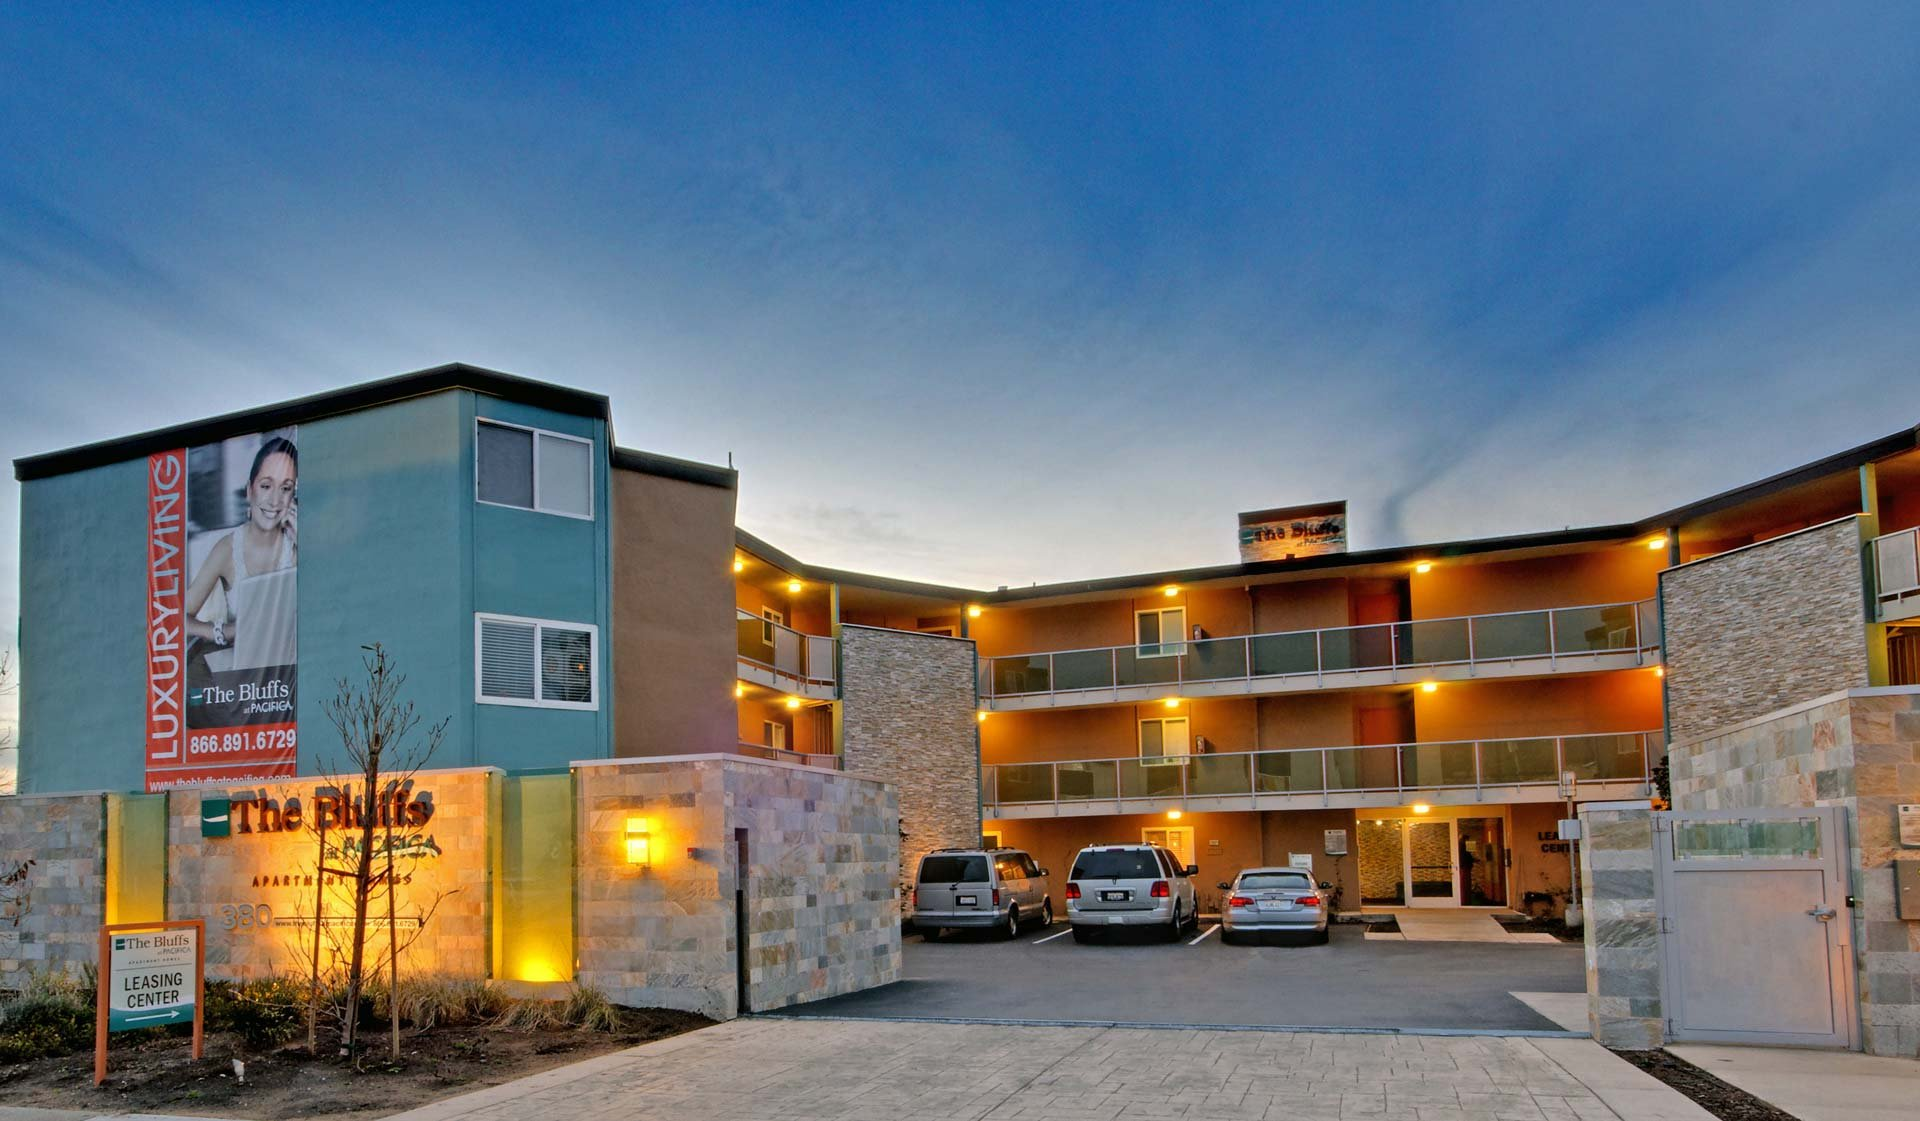 Apartments in Serramonte, Daly City, CA (see photos, floor plans & more)